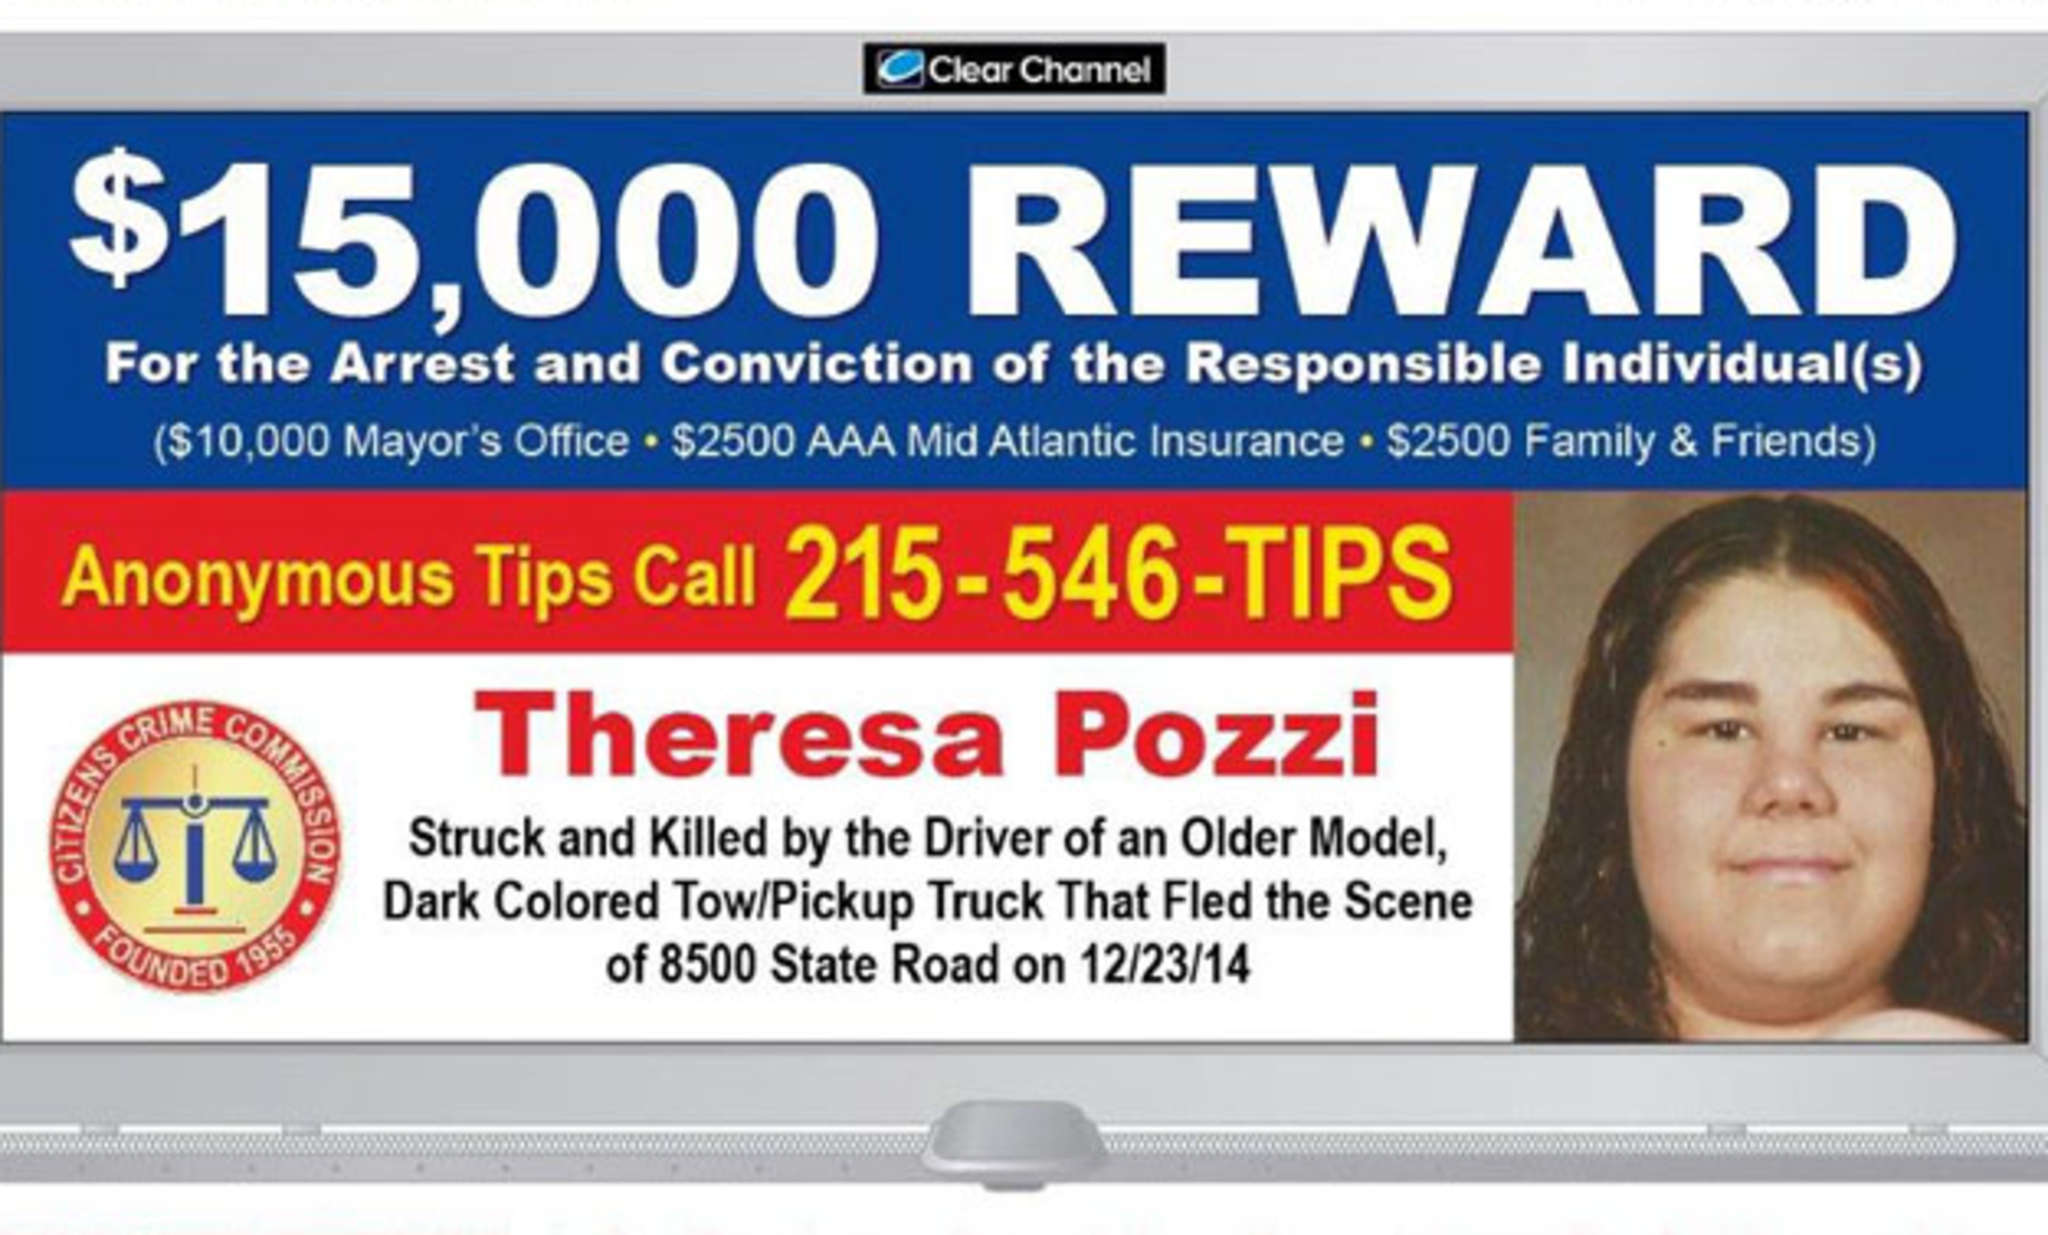 Theresa Pozzi ´s family is desperate for answers and hopes a new billboard (and reward) will generate leads in her death. CLEAR CHANNEL